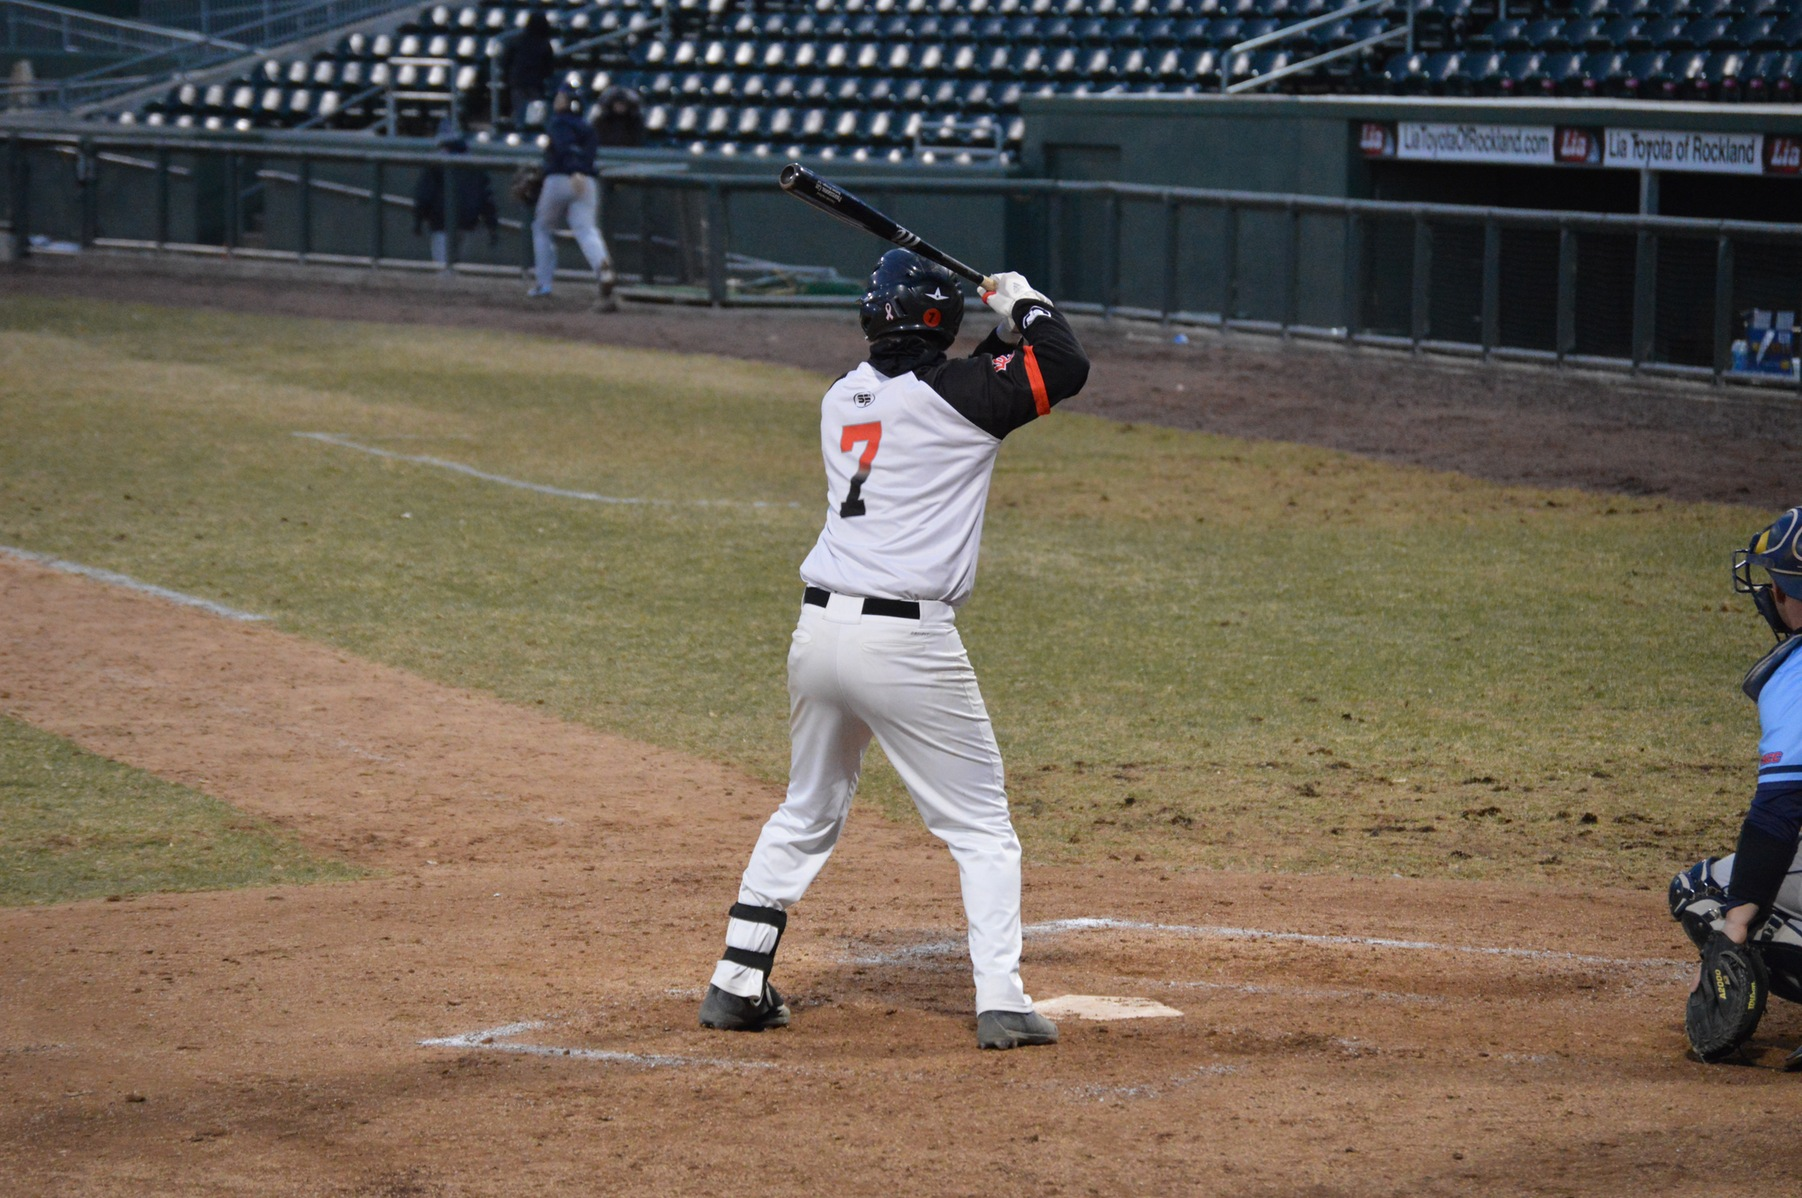 BRIAN ROTELLA EARNS GAME-WINNING HIT IN GAME TWO OF SPLIT WITH CONCORDIA